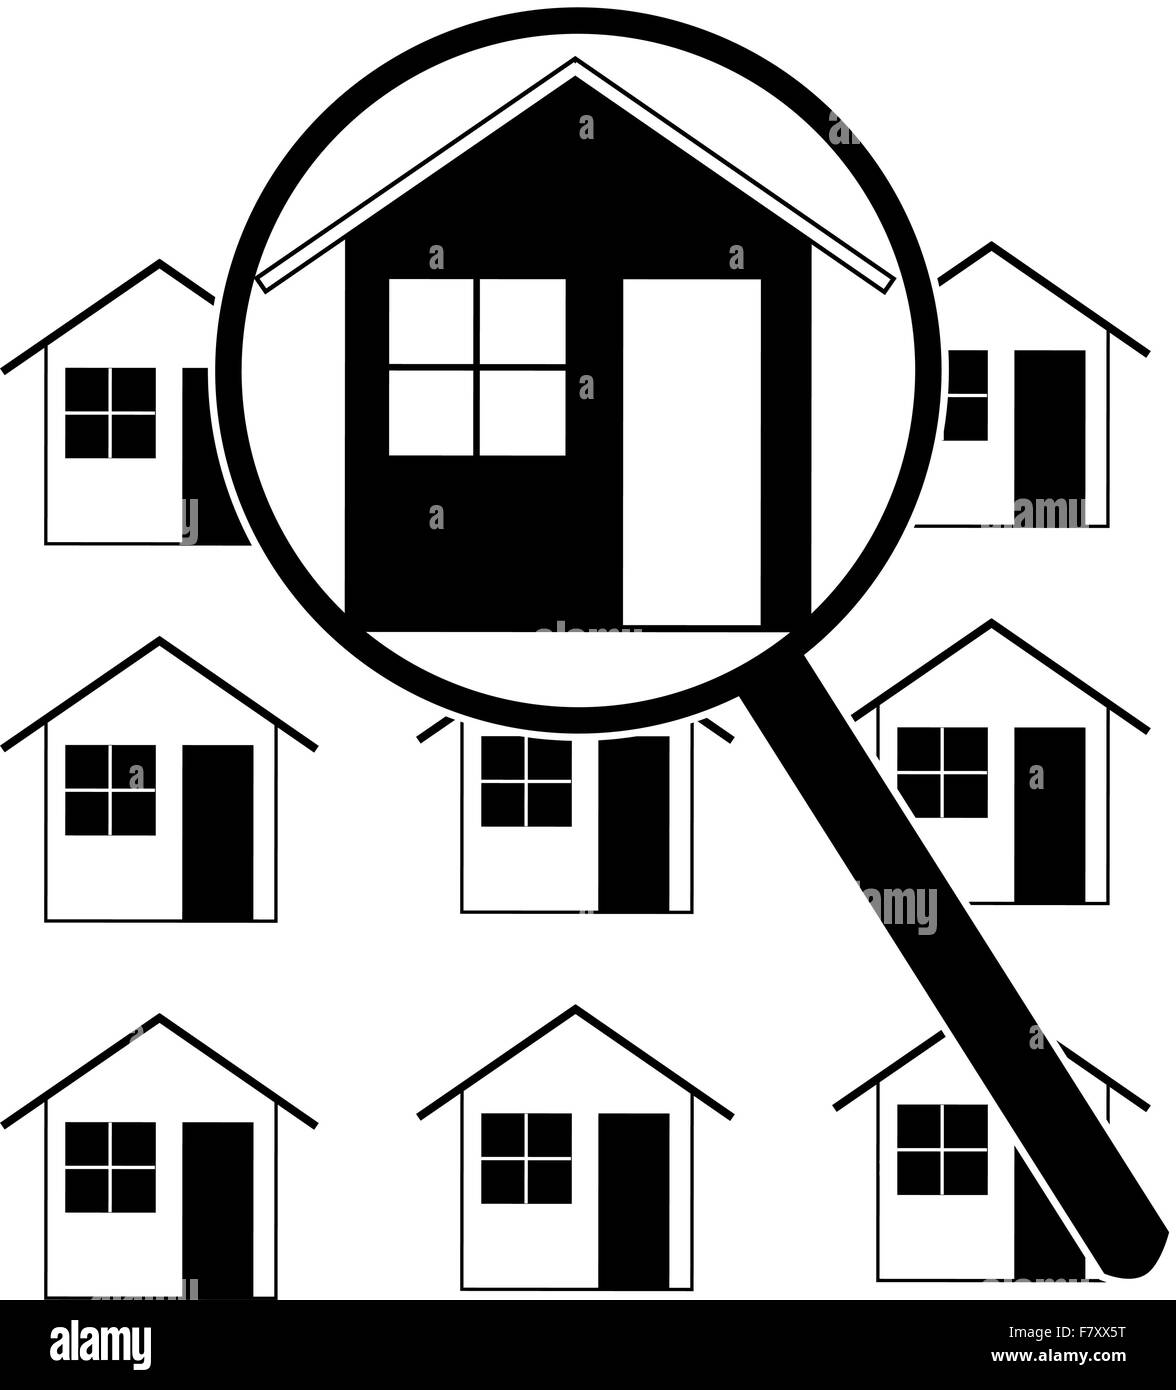 Home search - Stock Image